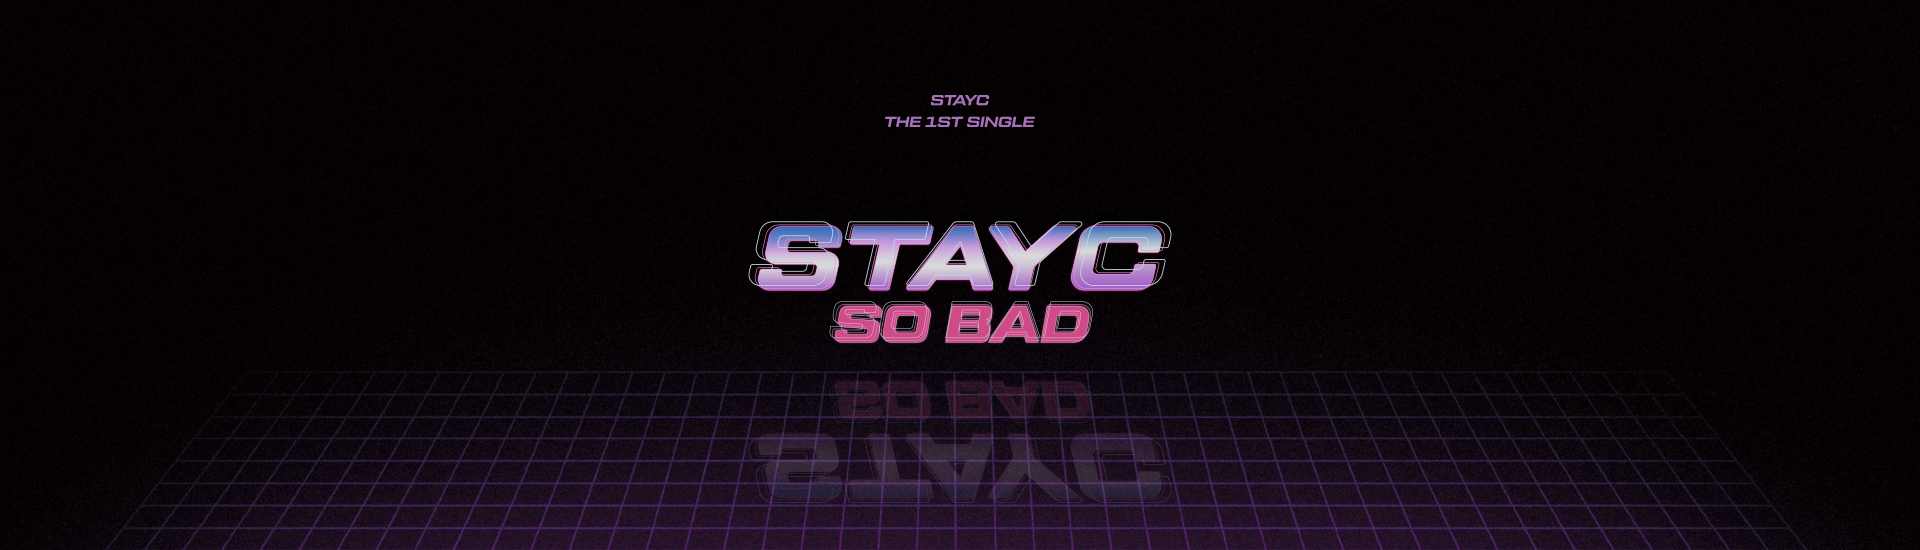 STAYC - GLOBAL VIDEO CALL EVENT